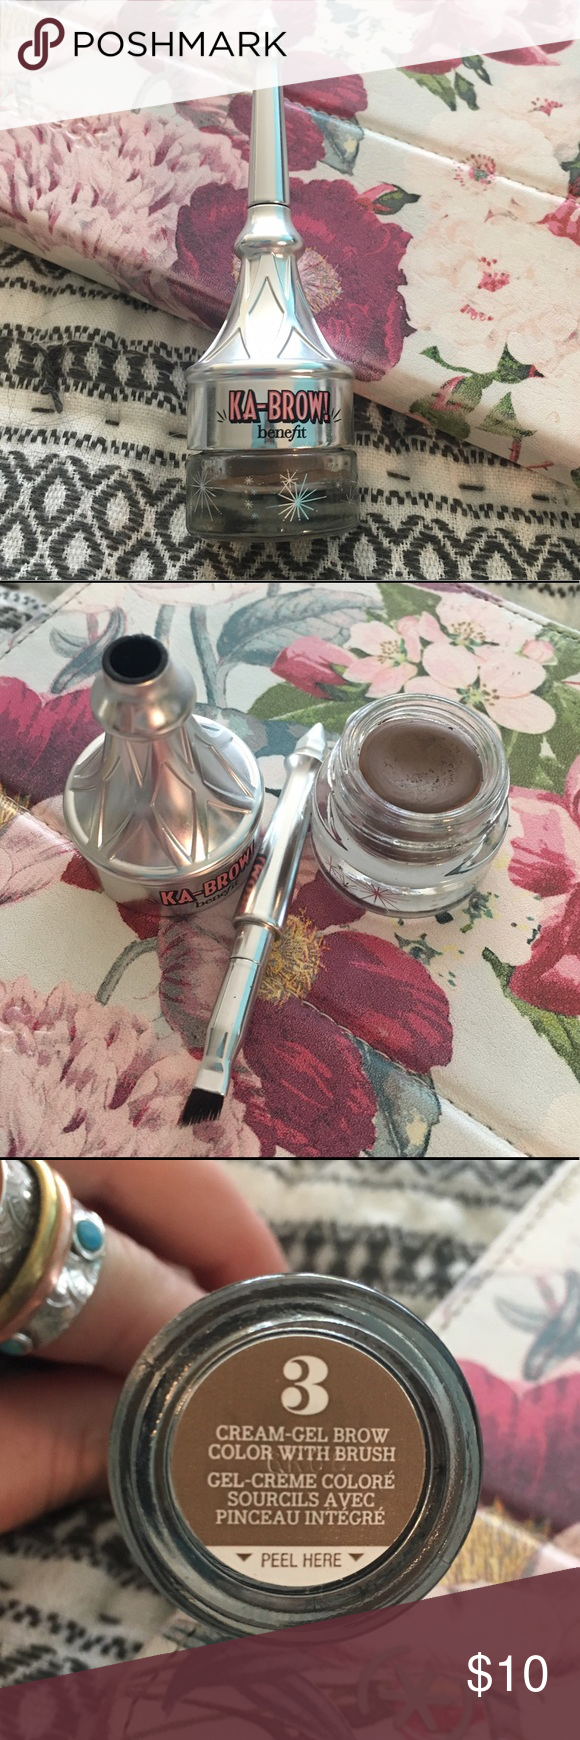 """Benefit """"KABROW"""" Cream Gel Brow Color With Brush Brow"""